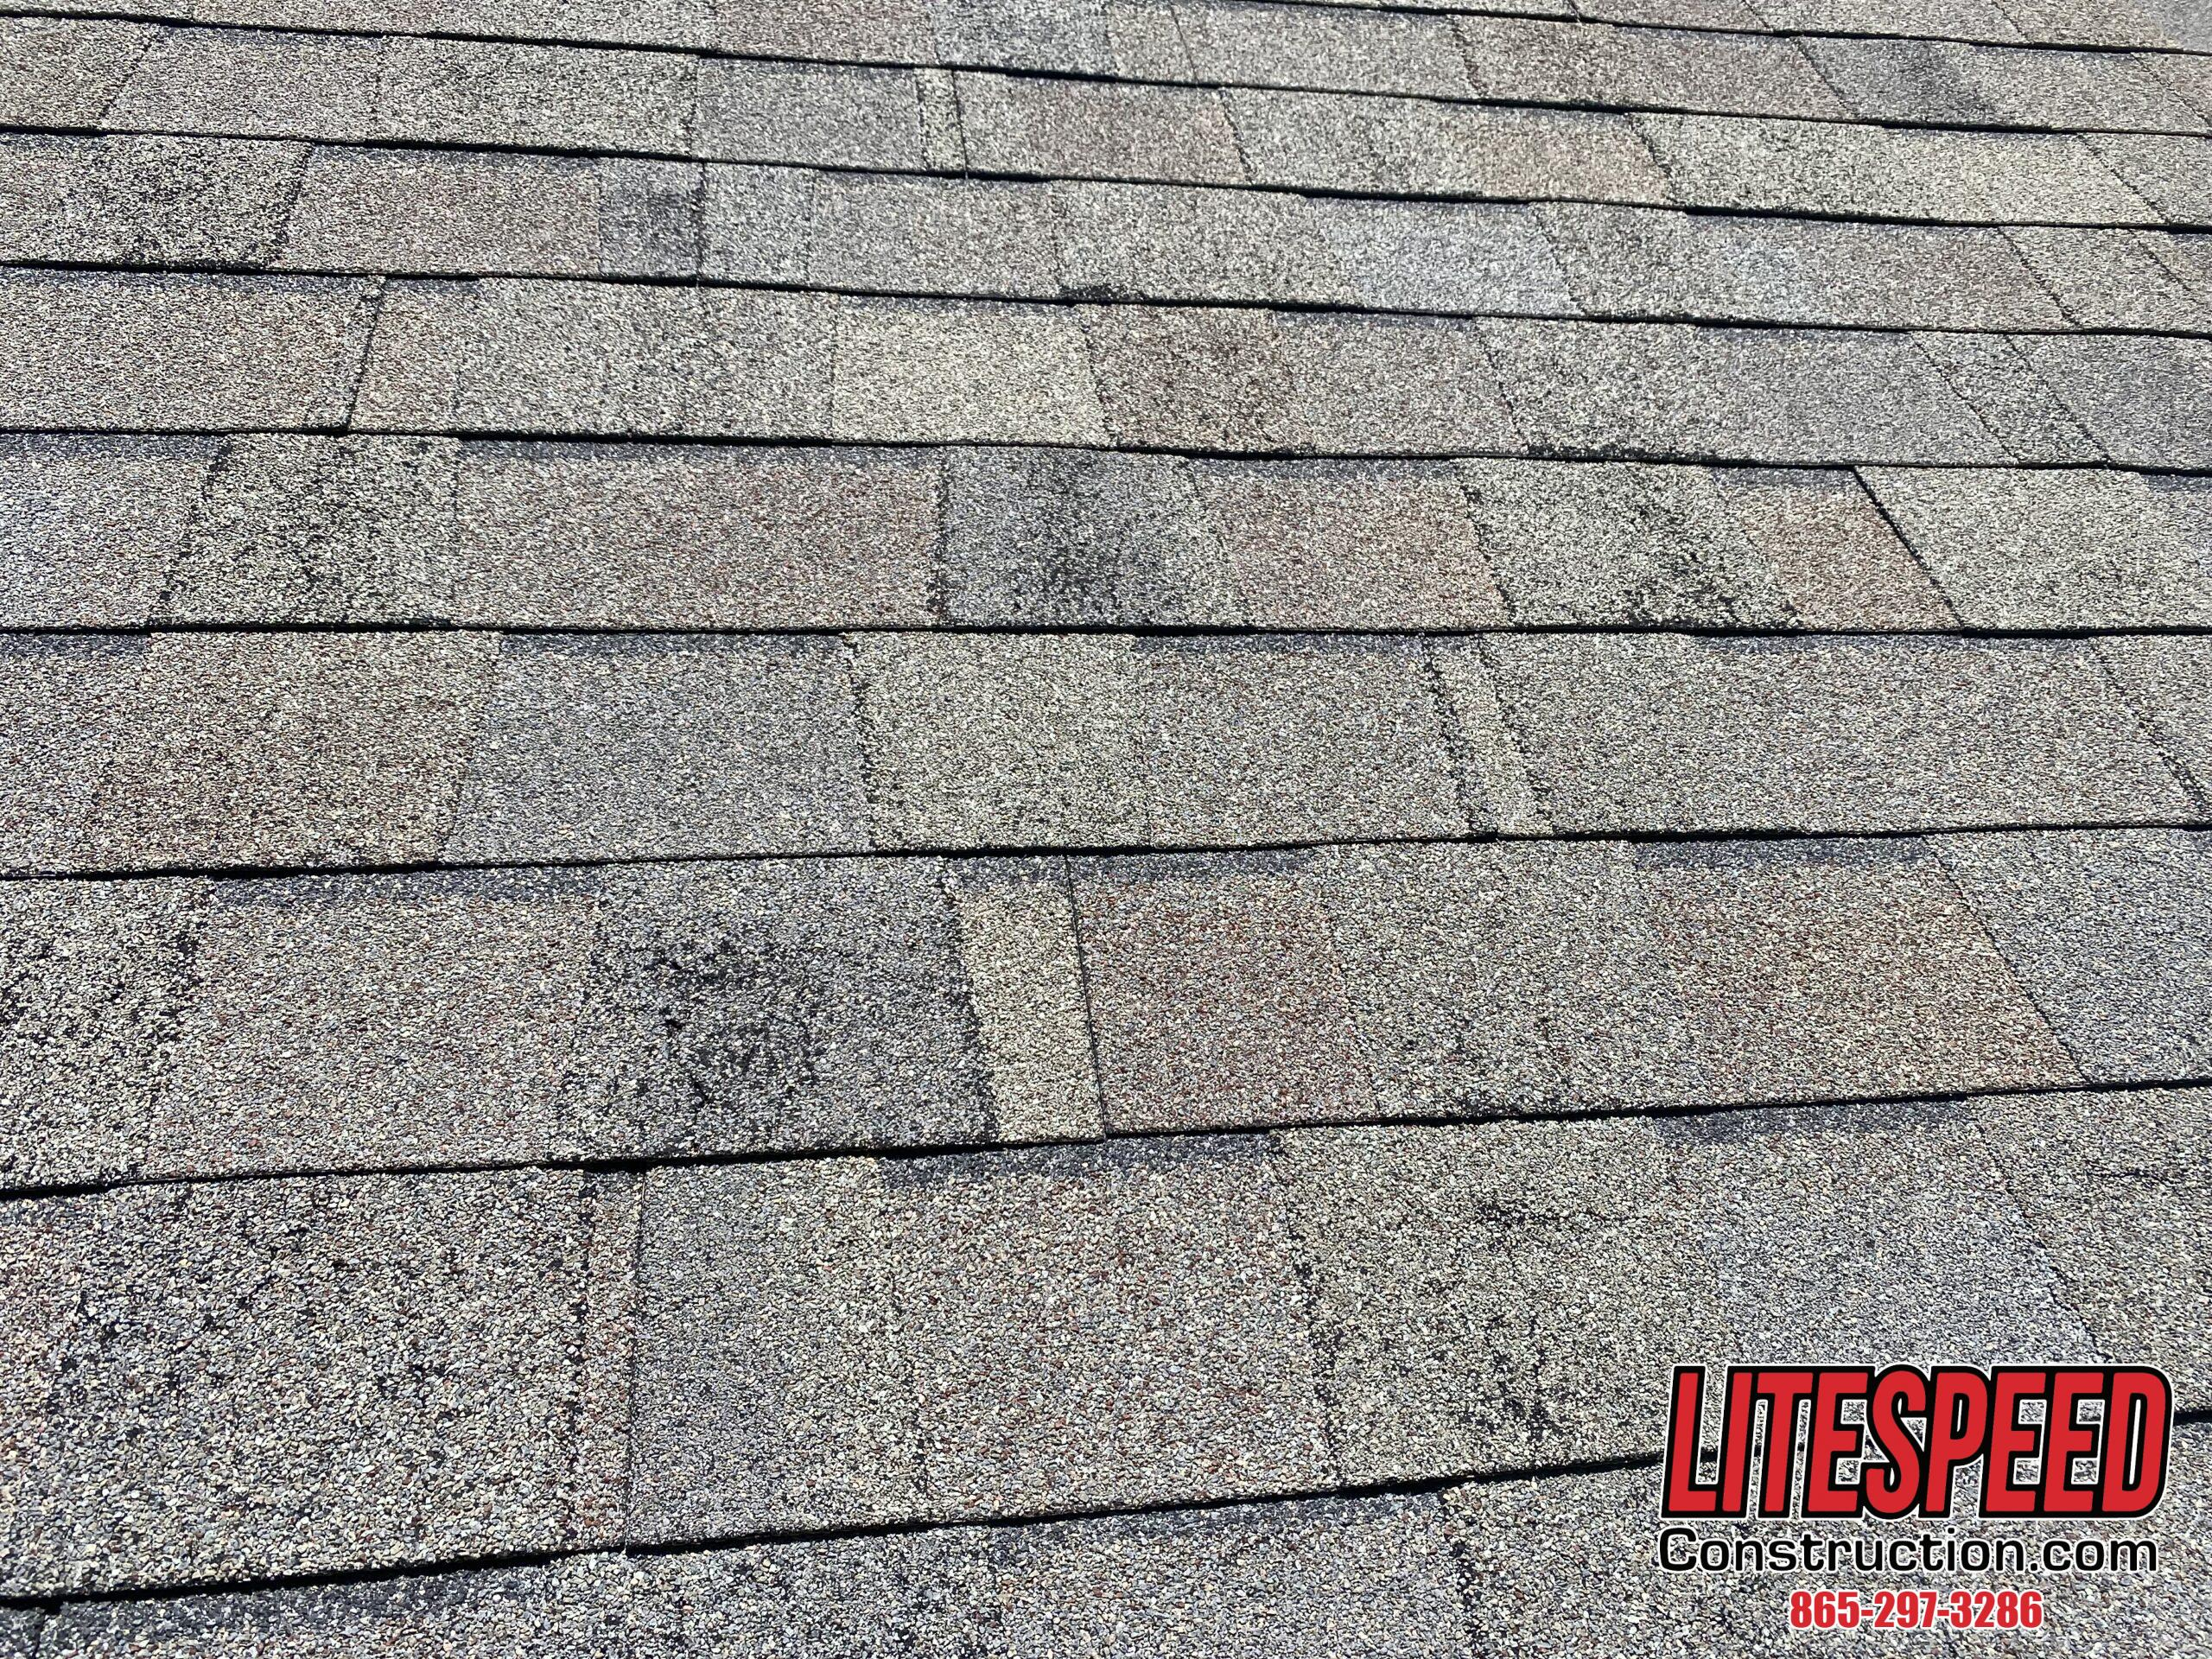 This is a picture of shingles that have granule loss on them